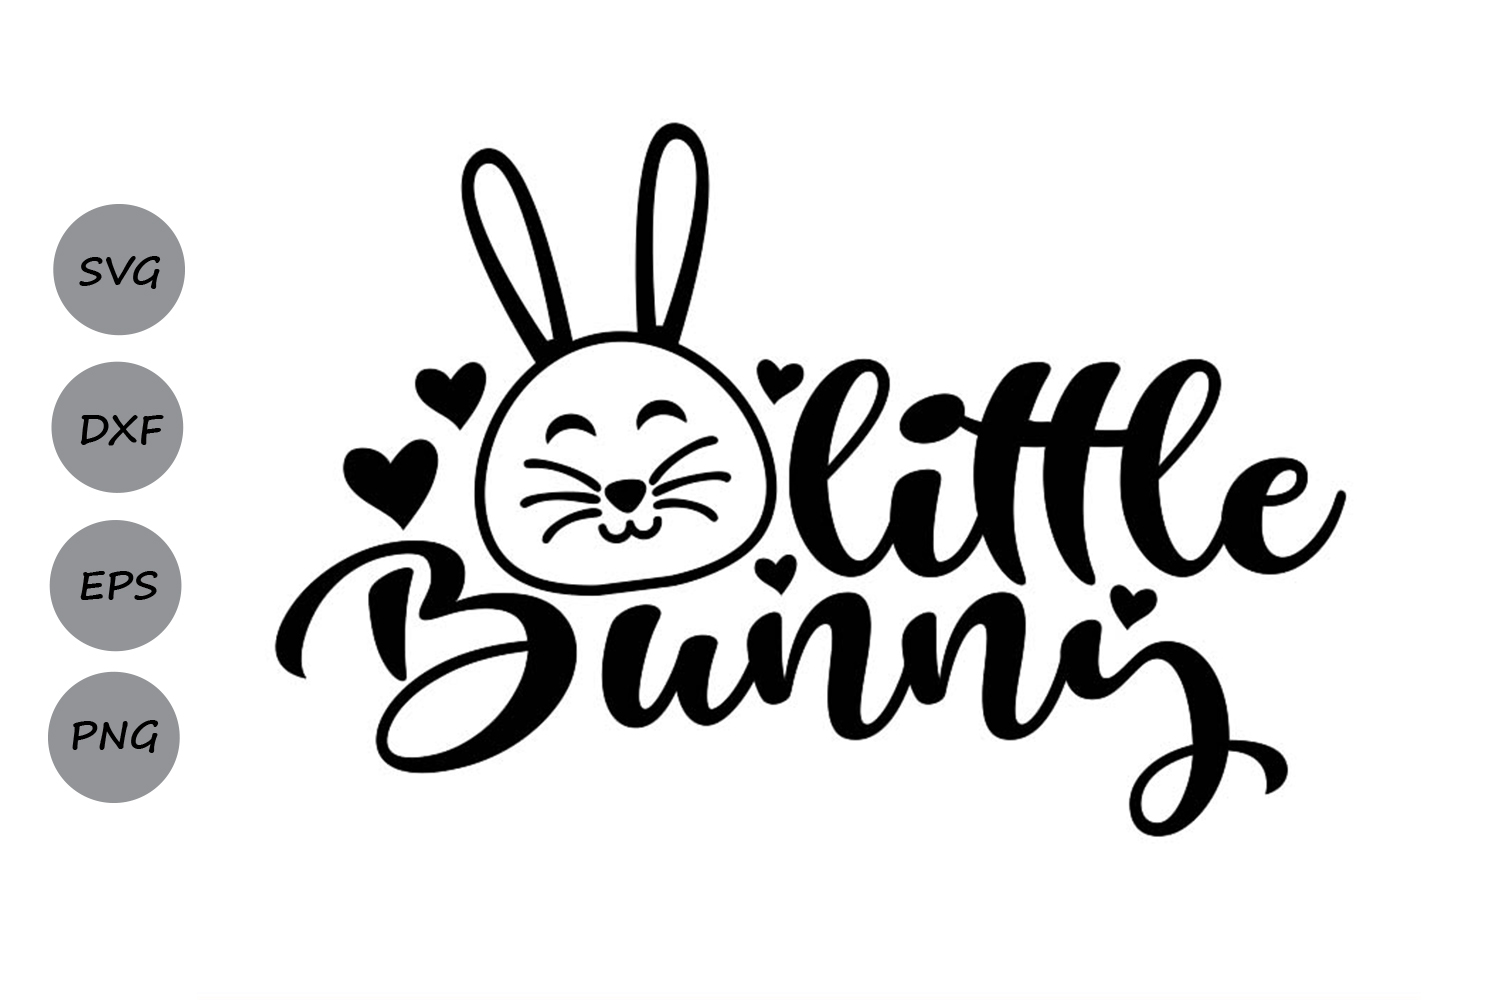 Download Free Little Bunny Svg Graphic By Cosmosfineart Creative Fabrica for Cricut Explore, Silhouette and other cutting machines.